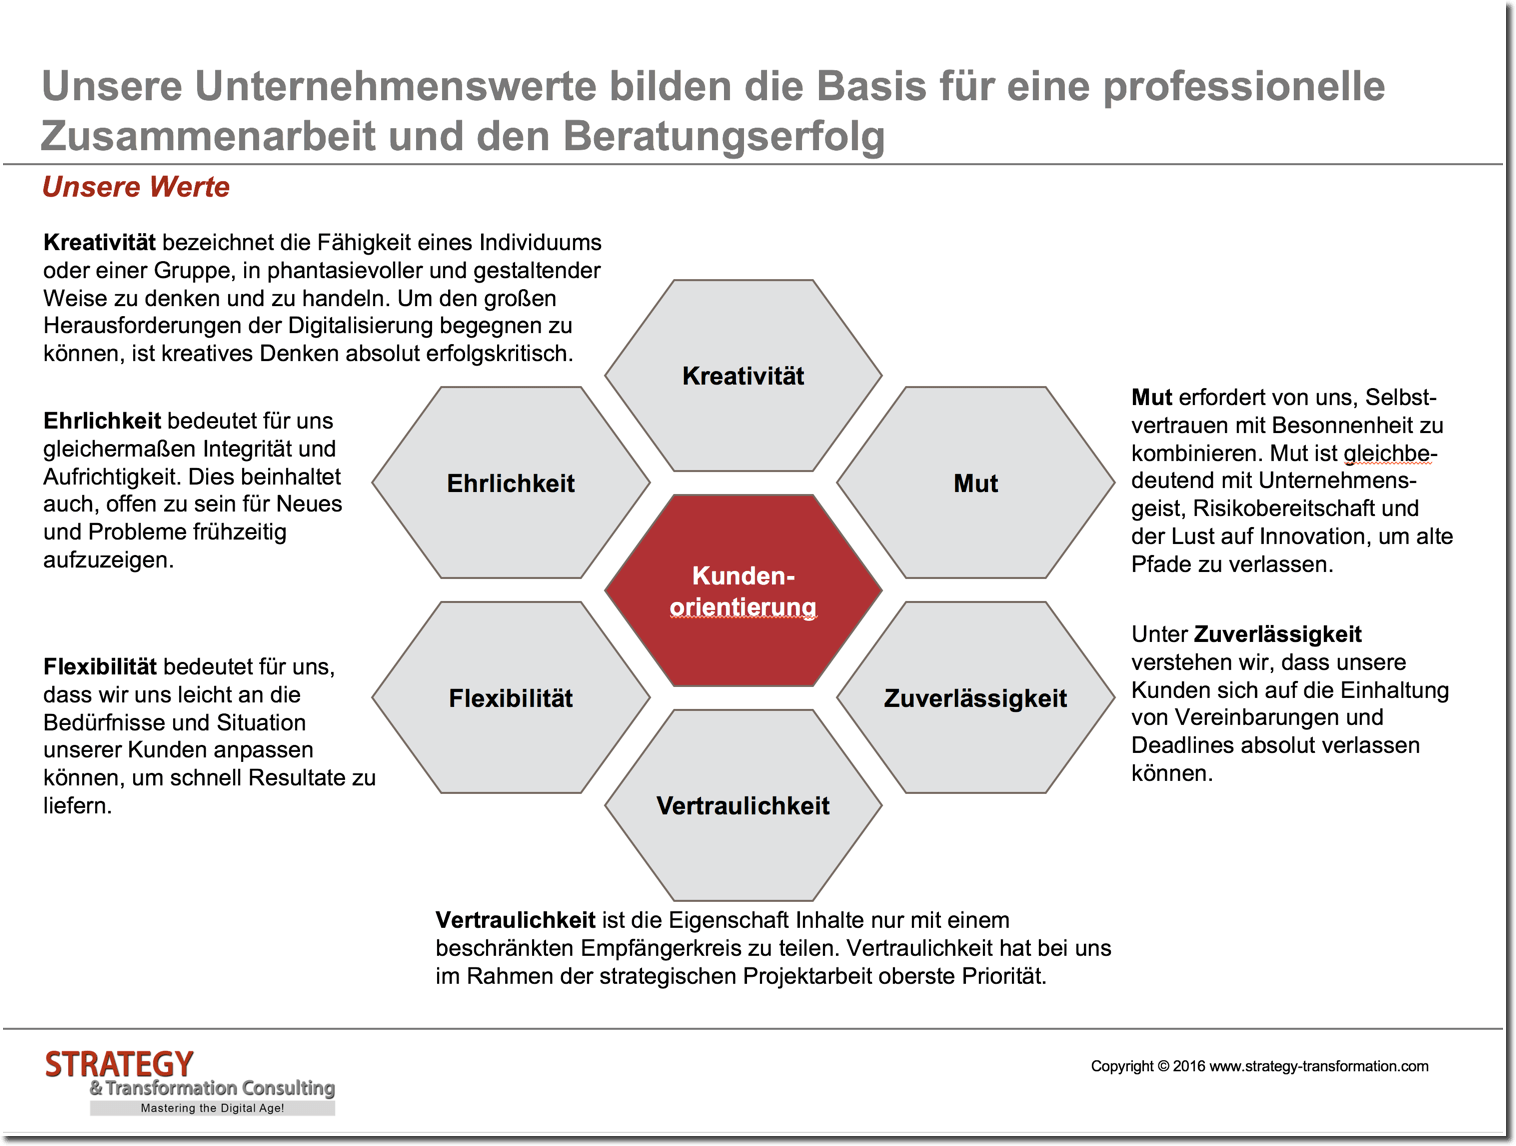 Unsere Werte - Strategy & Transformation Consulting